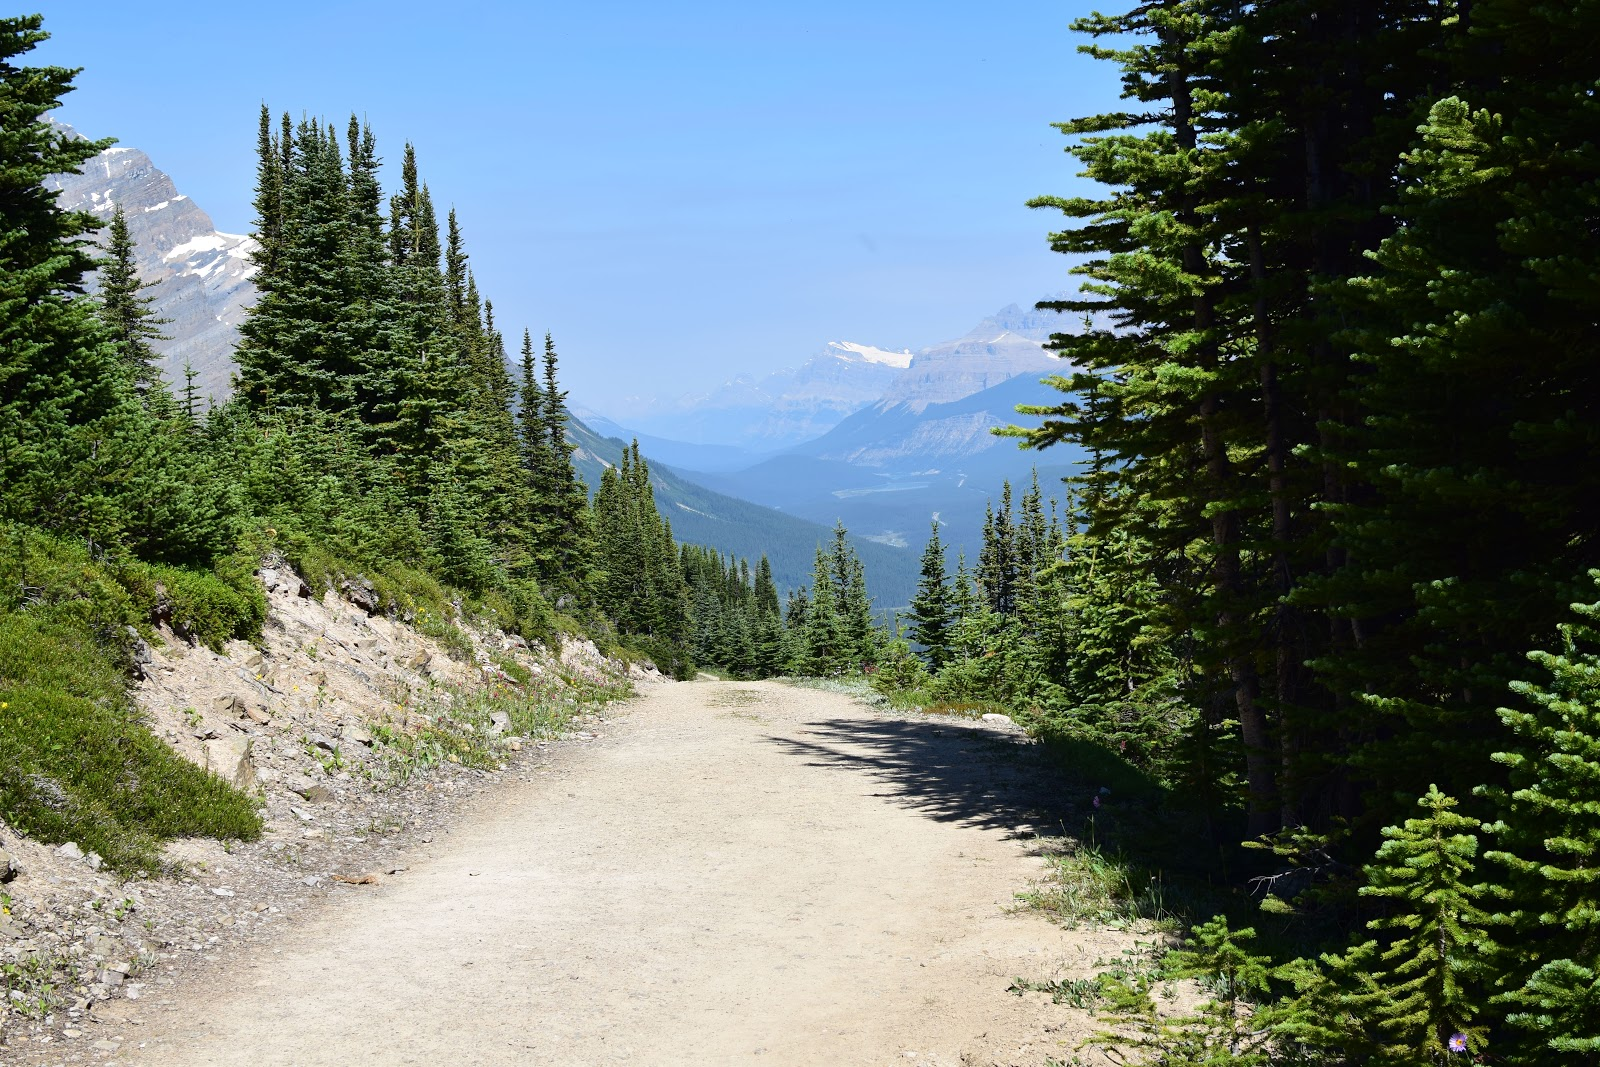 Fire Road to Bow Summit